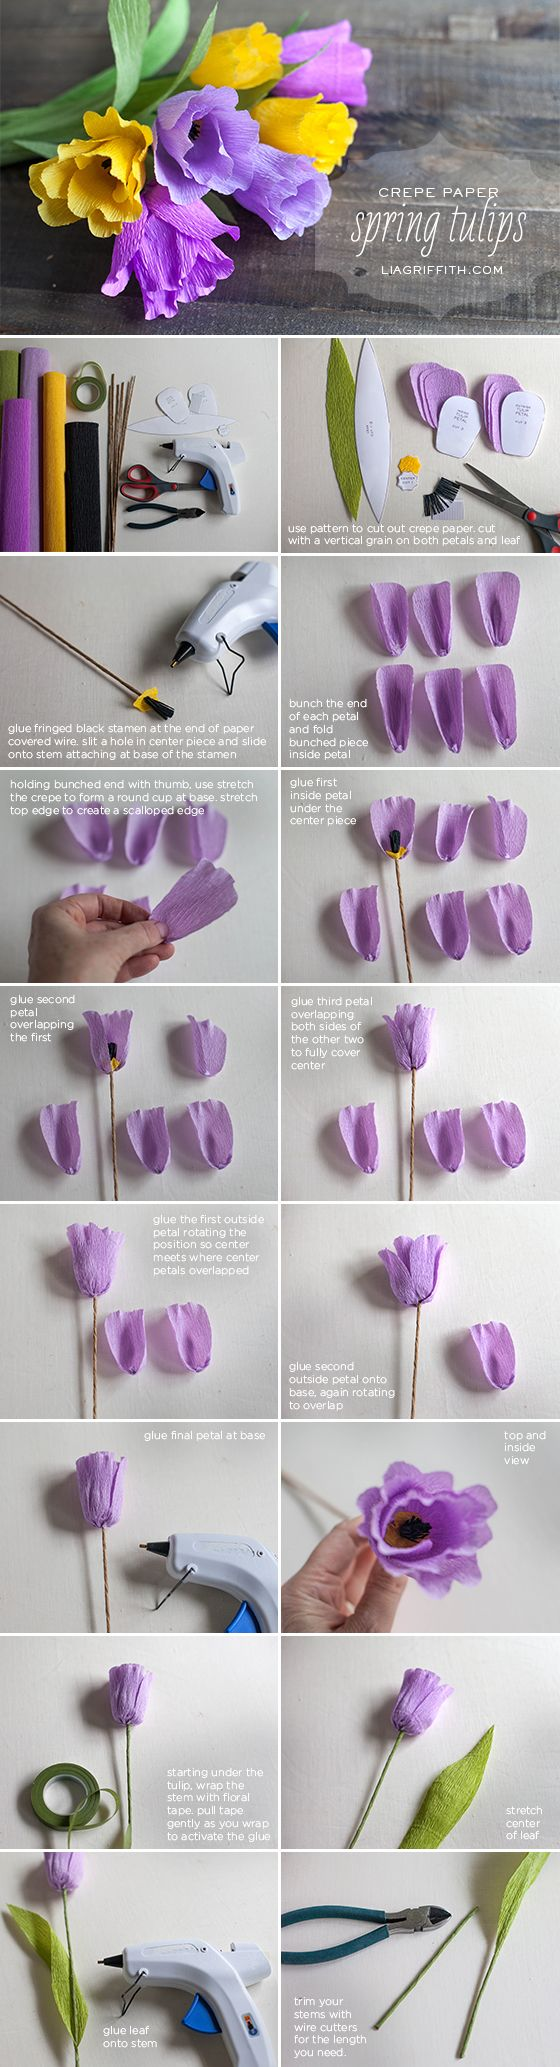 DIY Crepe Paper Tulips: tutorial by Lia Griffith